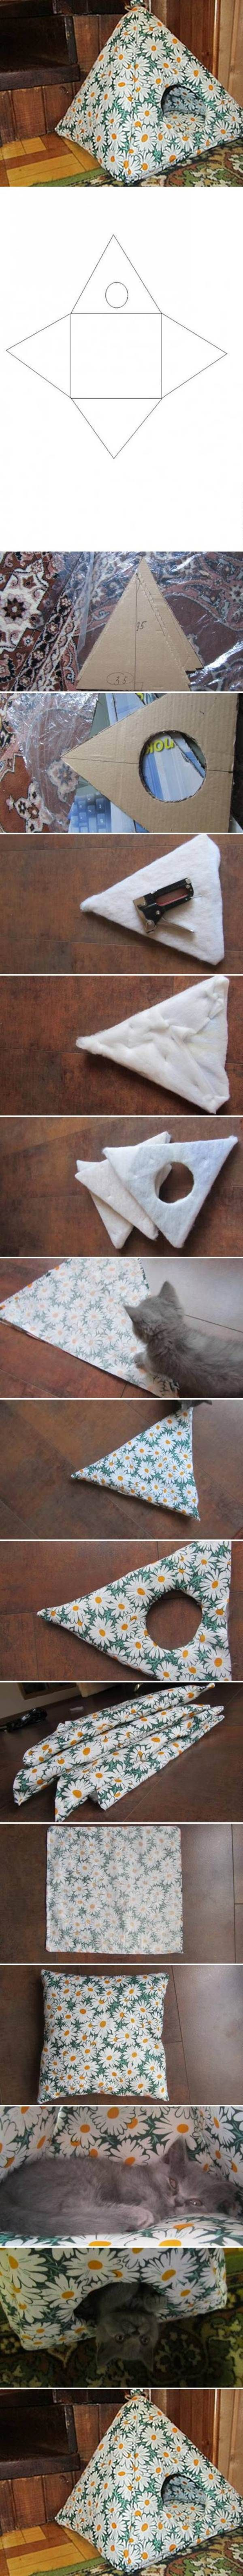 D.I.Y Cat/Rabbit Tent with Cardboard